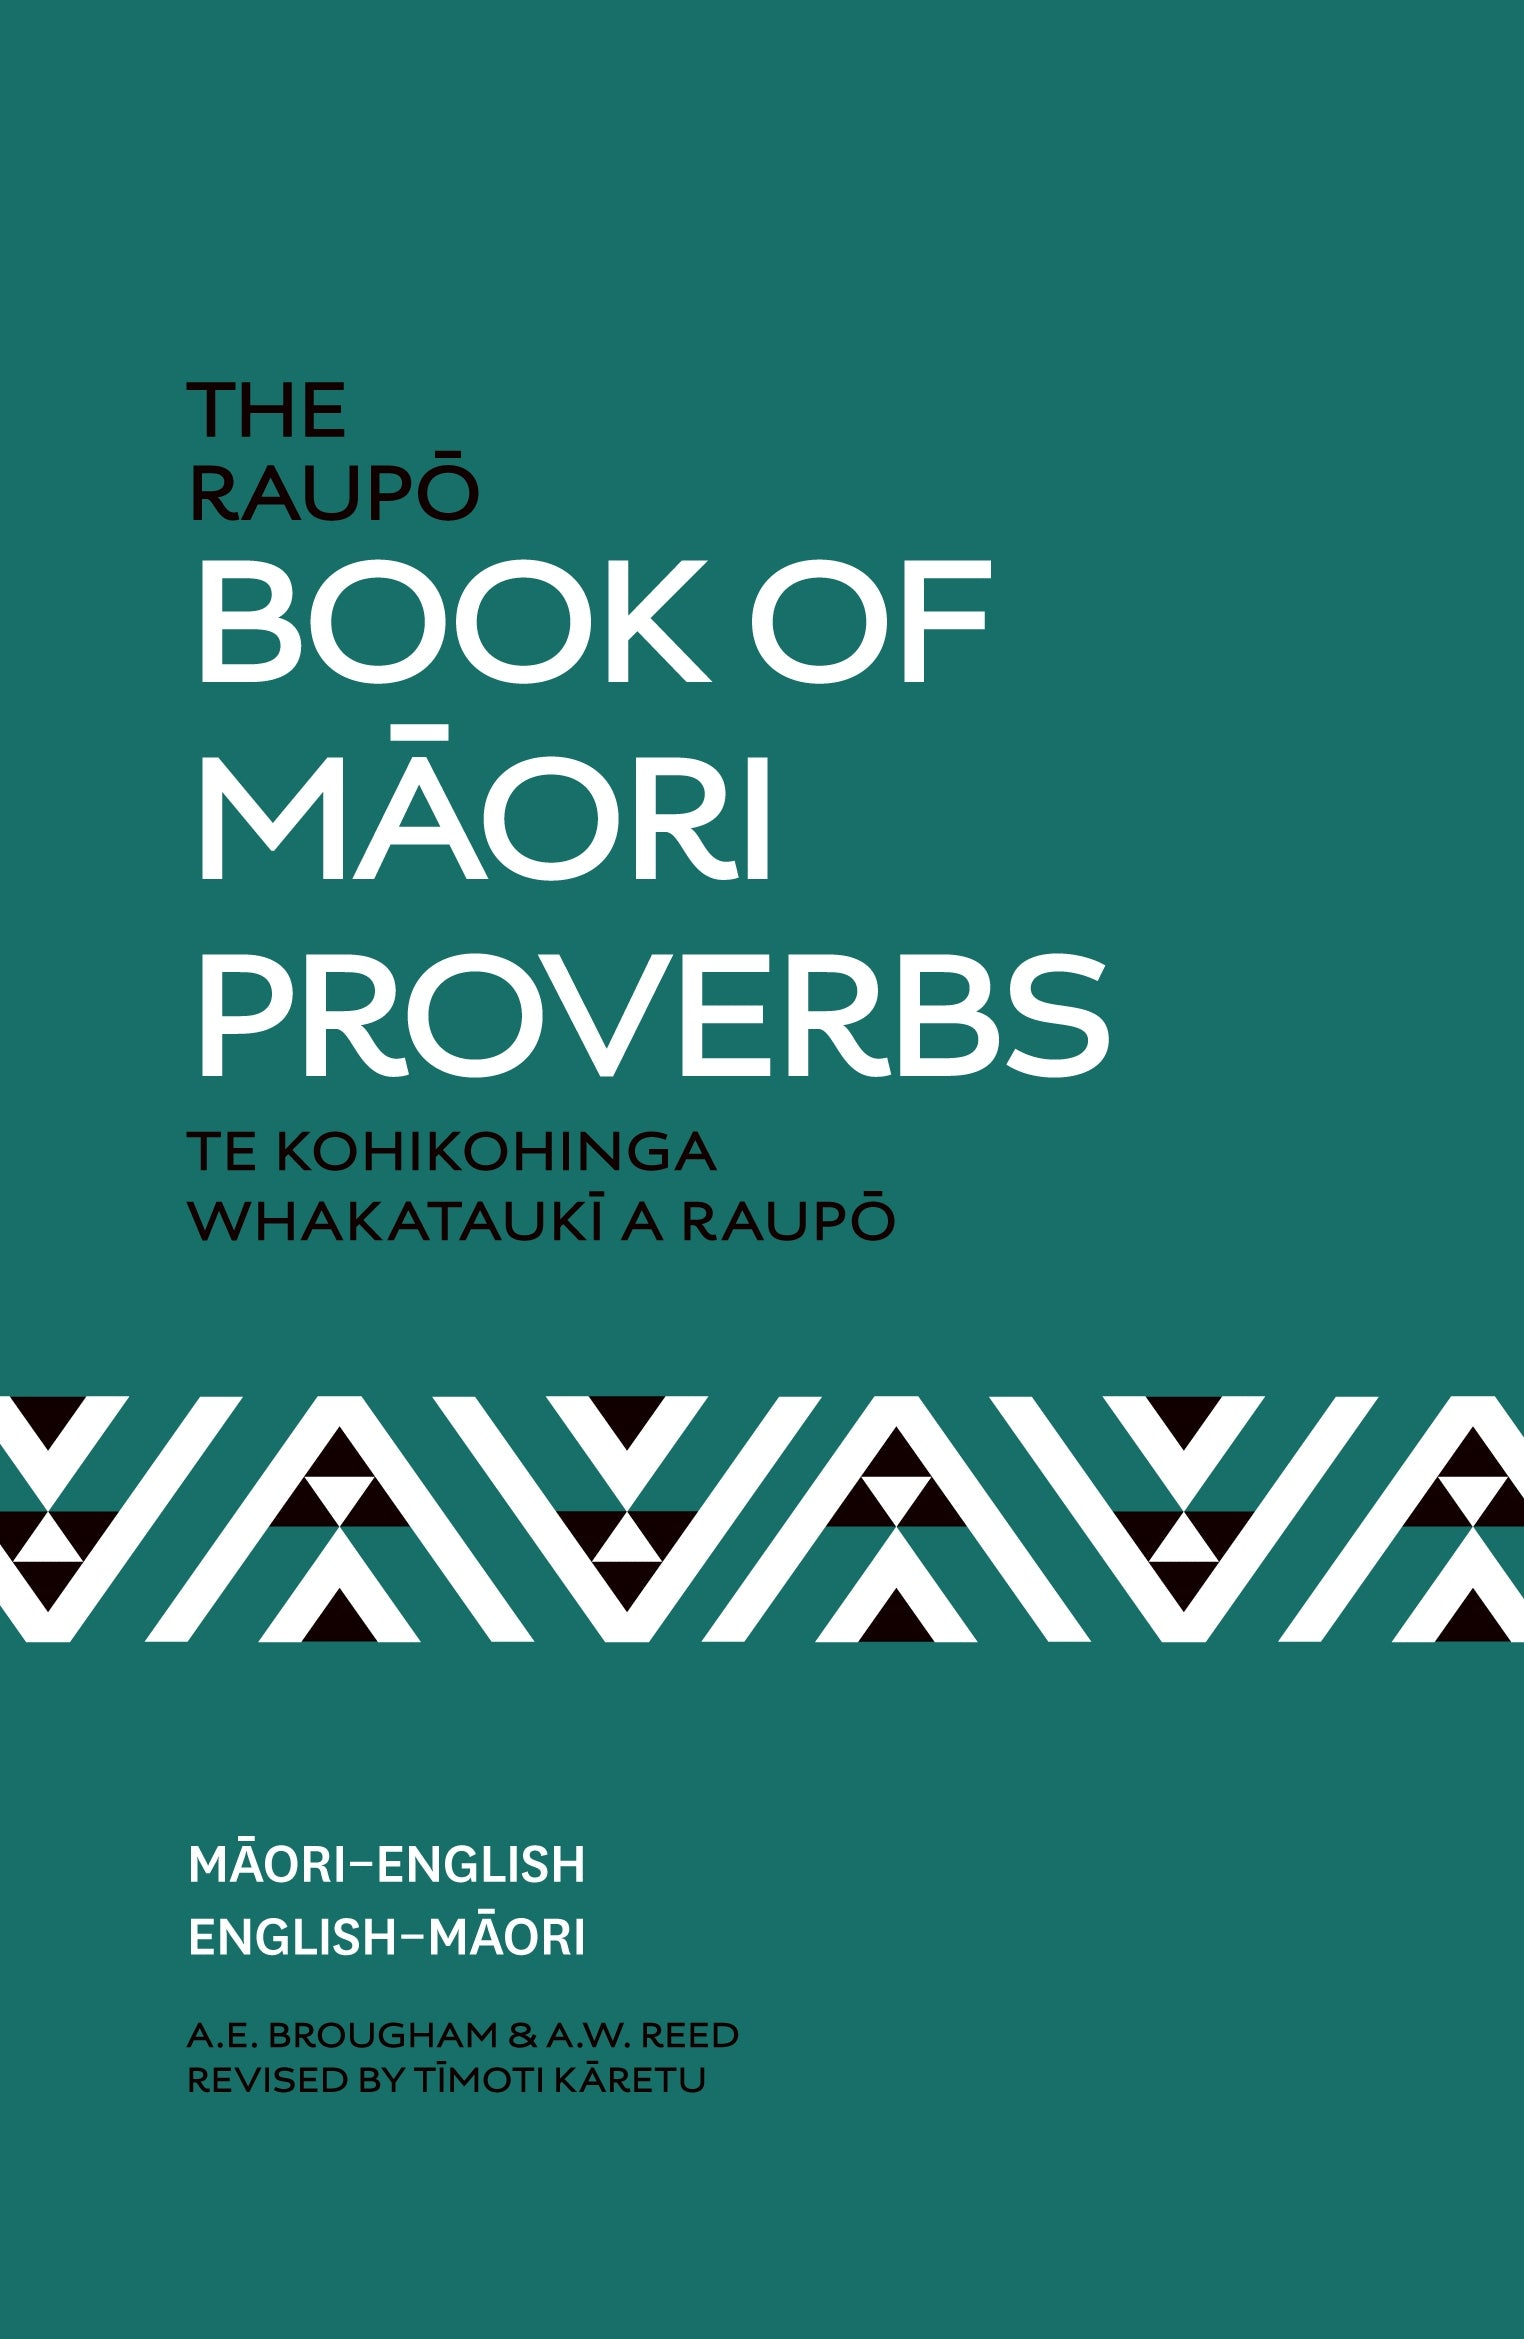 The Raupo Book of Maori Proverbs - 9780143567912